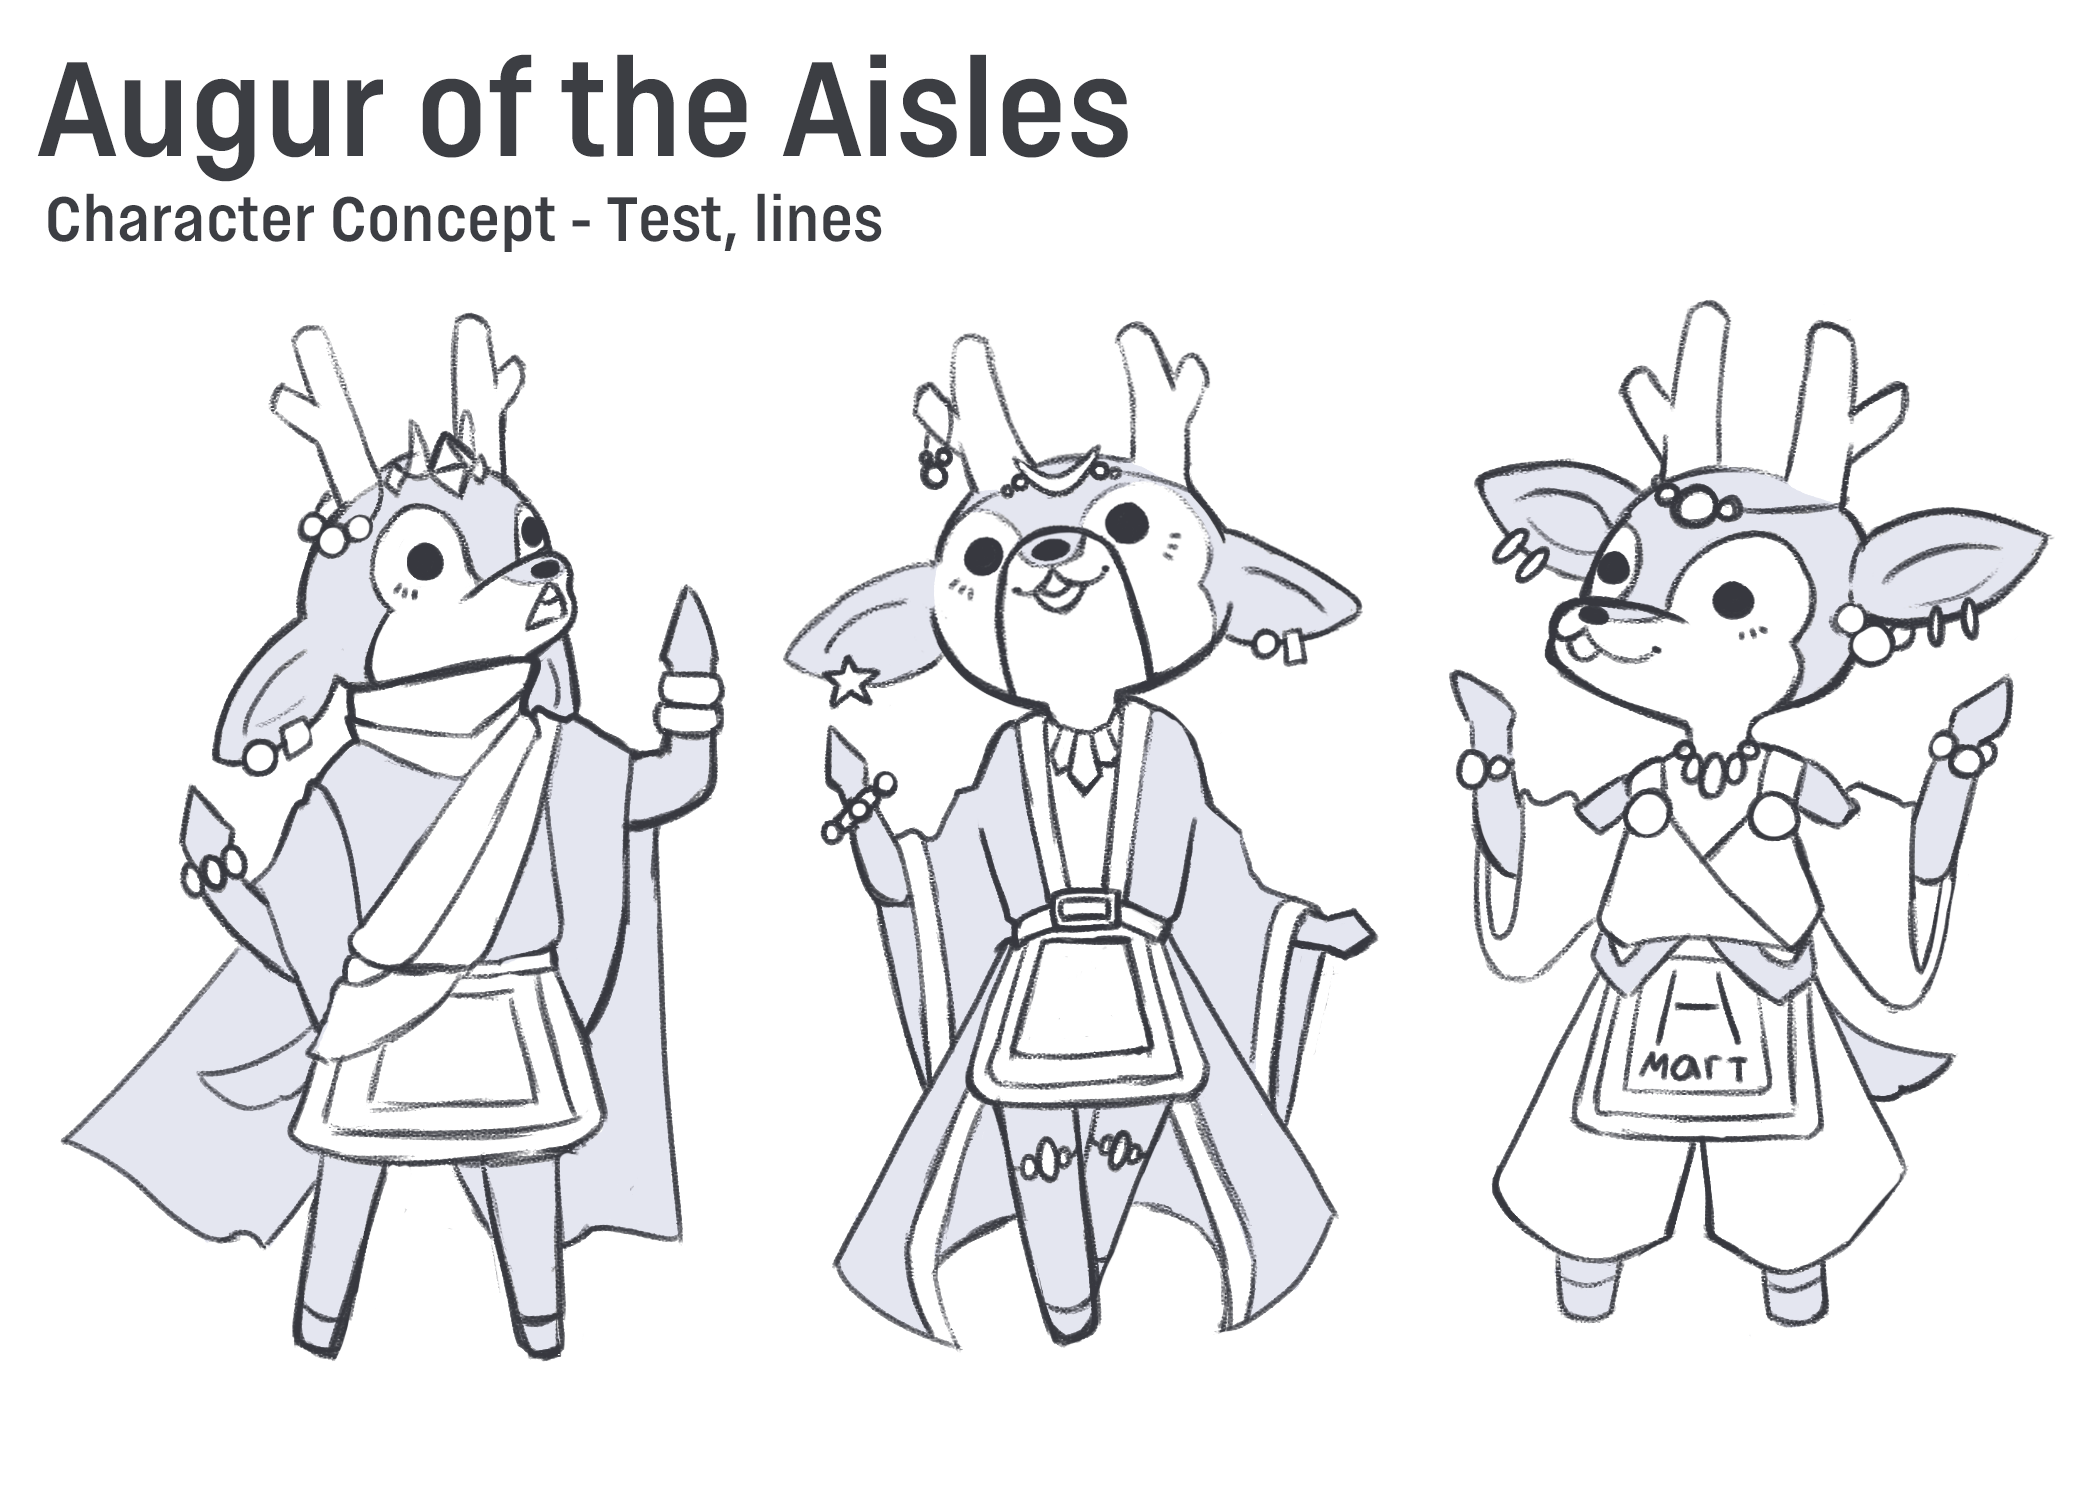 Adventure Mart Character Concept, Augur of the Aisles